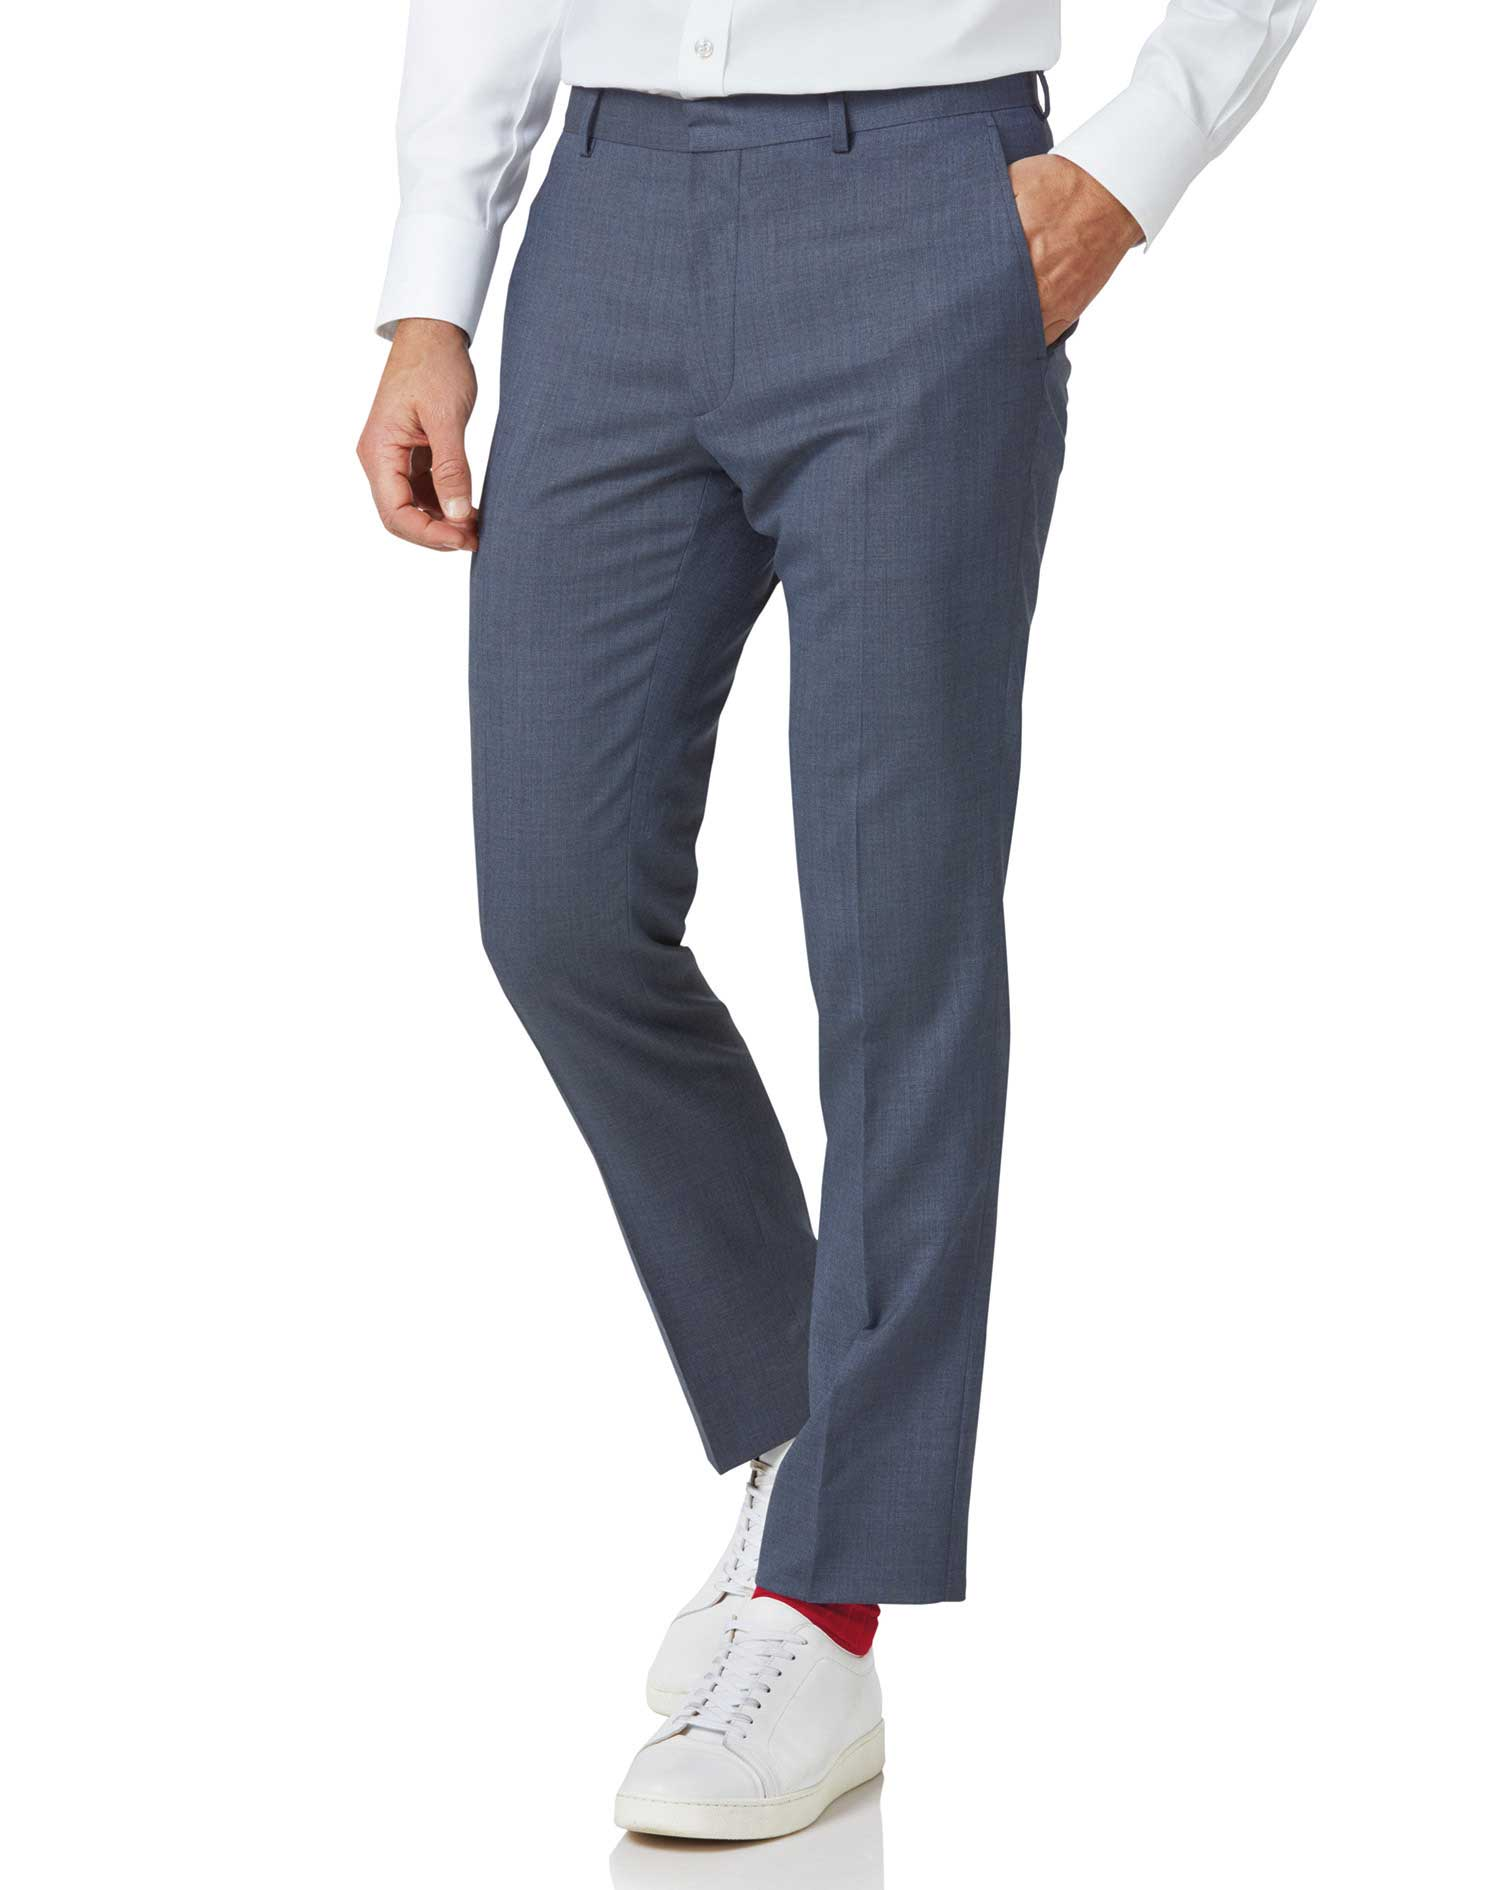 Image of Charles Tyrwhitt Airforce Blue Extra Slim Fit Merino Business Suit Trousers Size W76 L97 by Charles Tyrwhitt